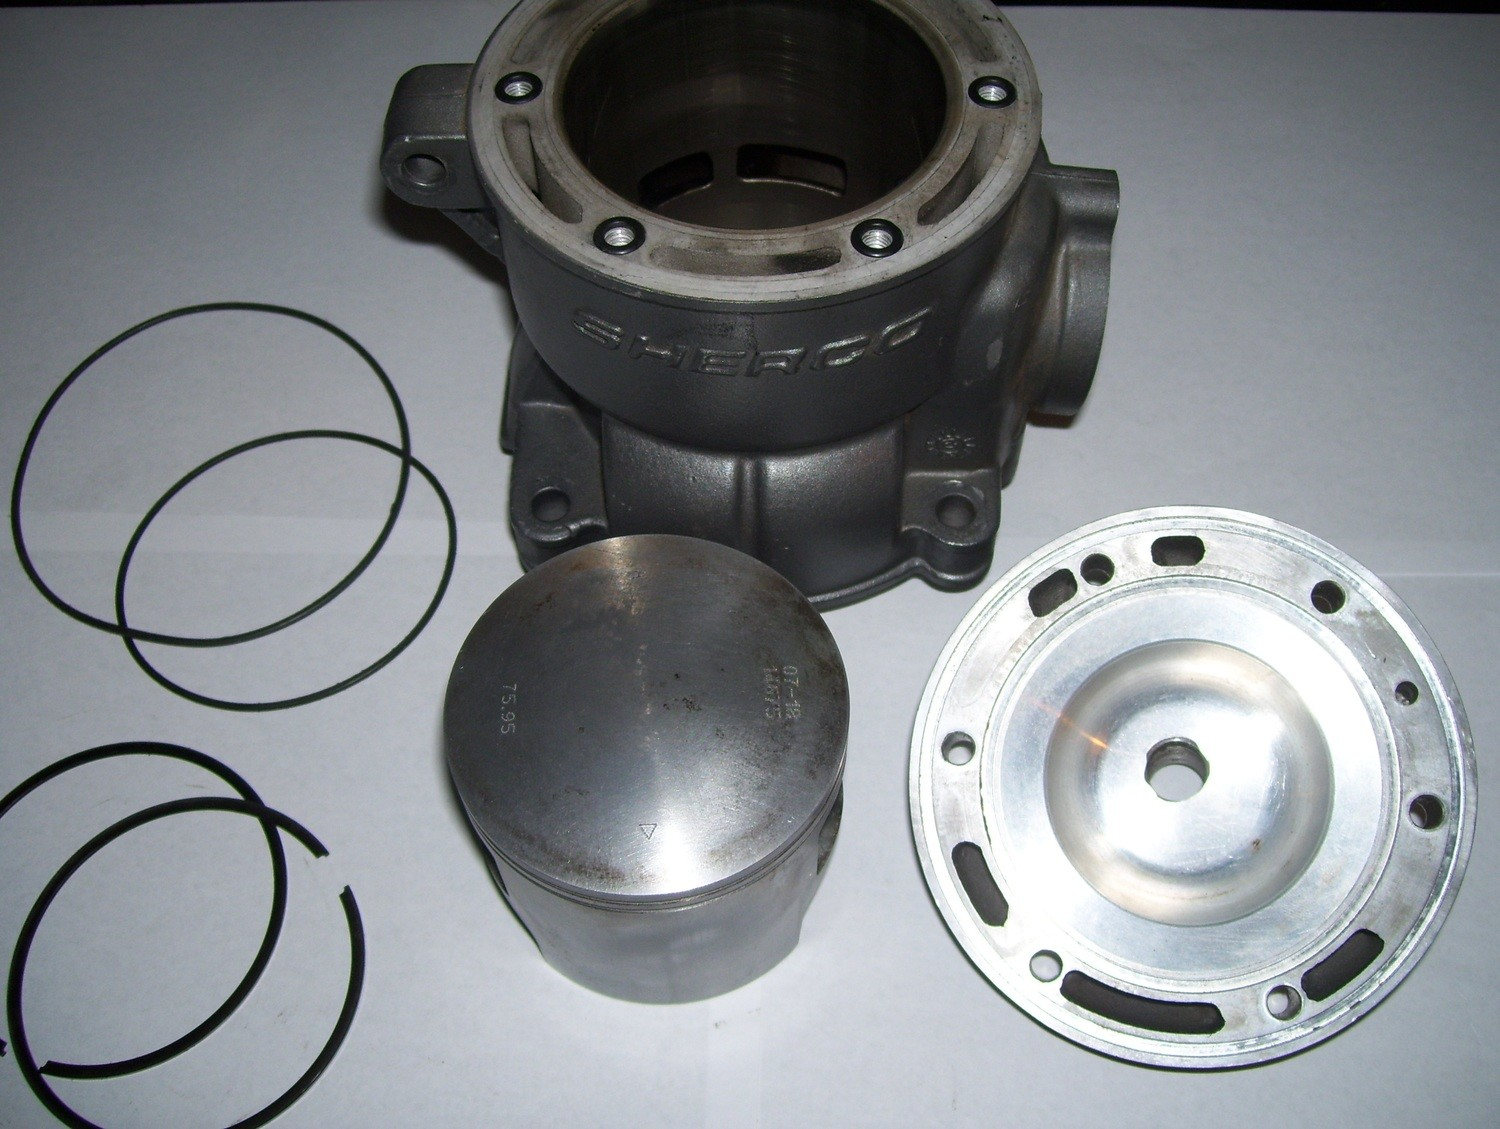 2008 sherco 2.5 cylinder kit